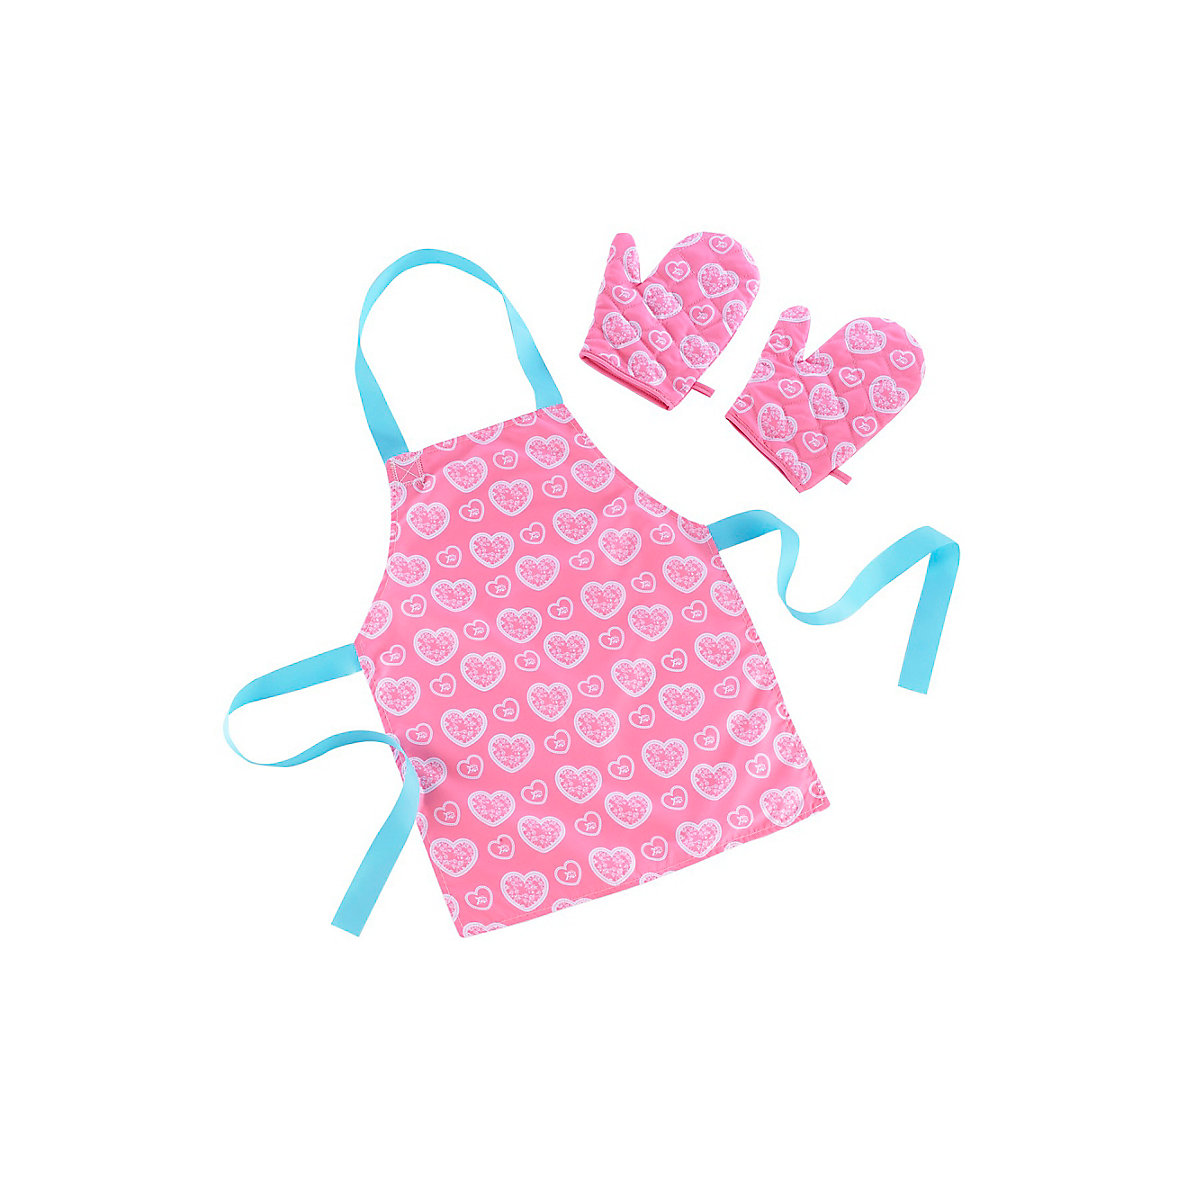 New ELC Girl Apron and Glove Set - Pink Toy From 3 years - Dressing Up Gifts